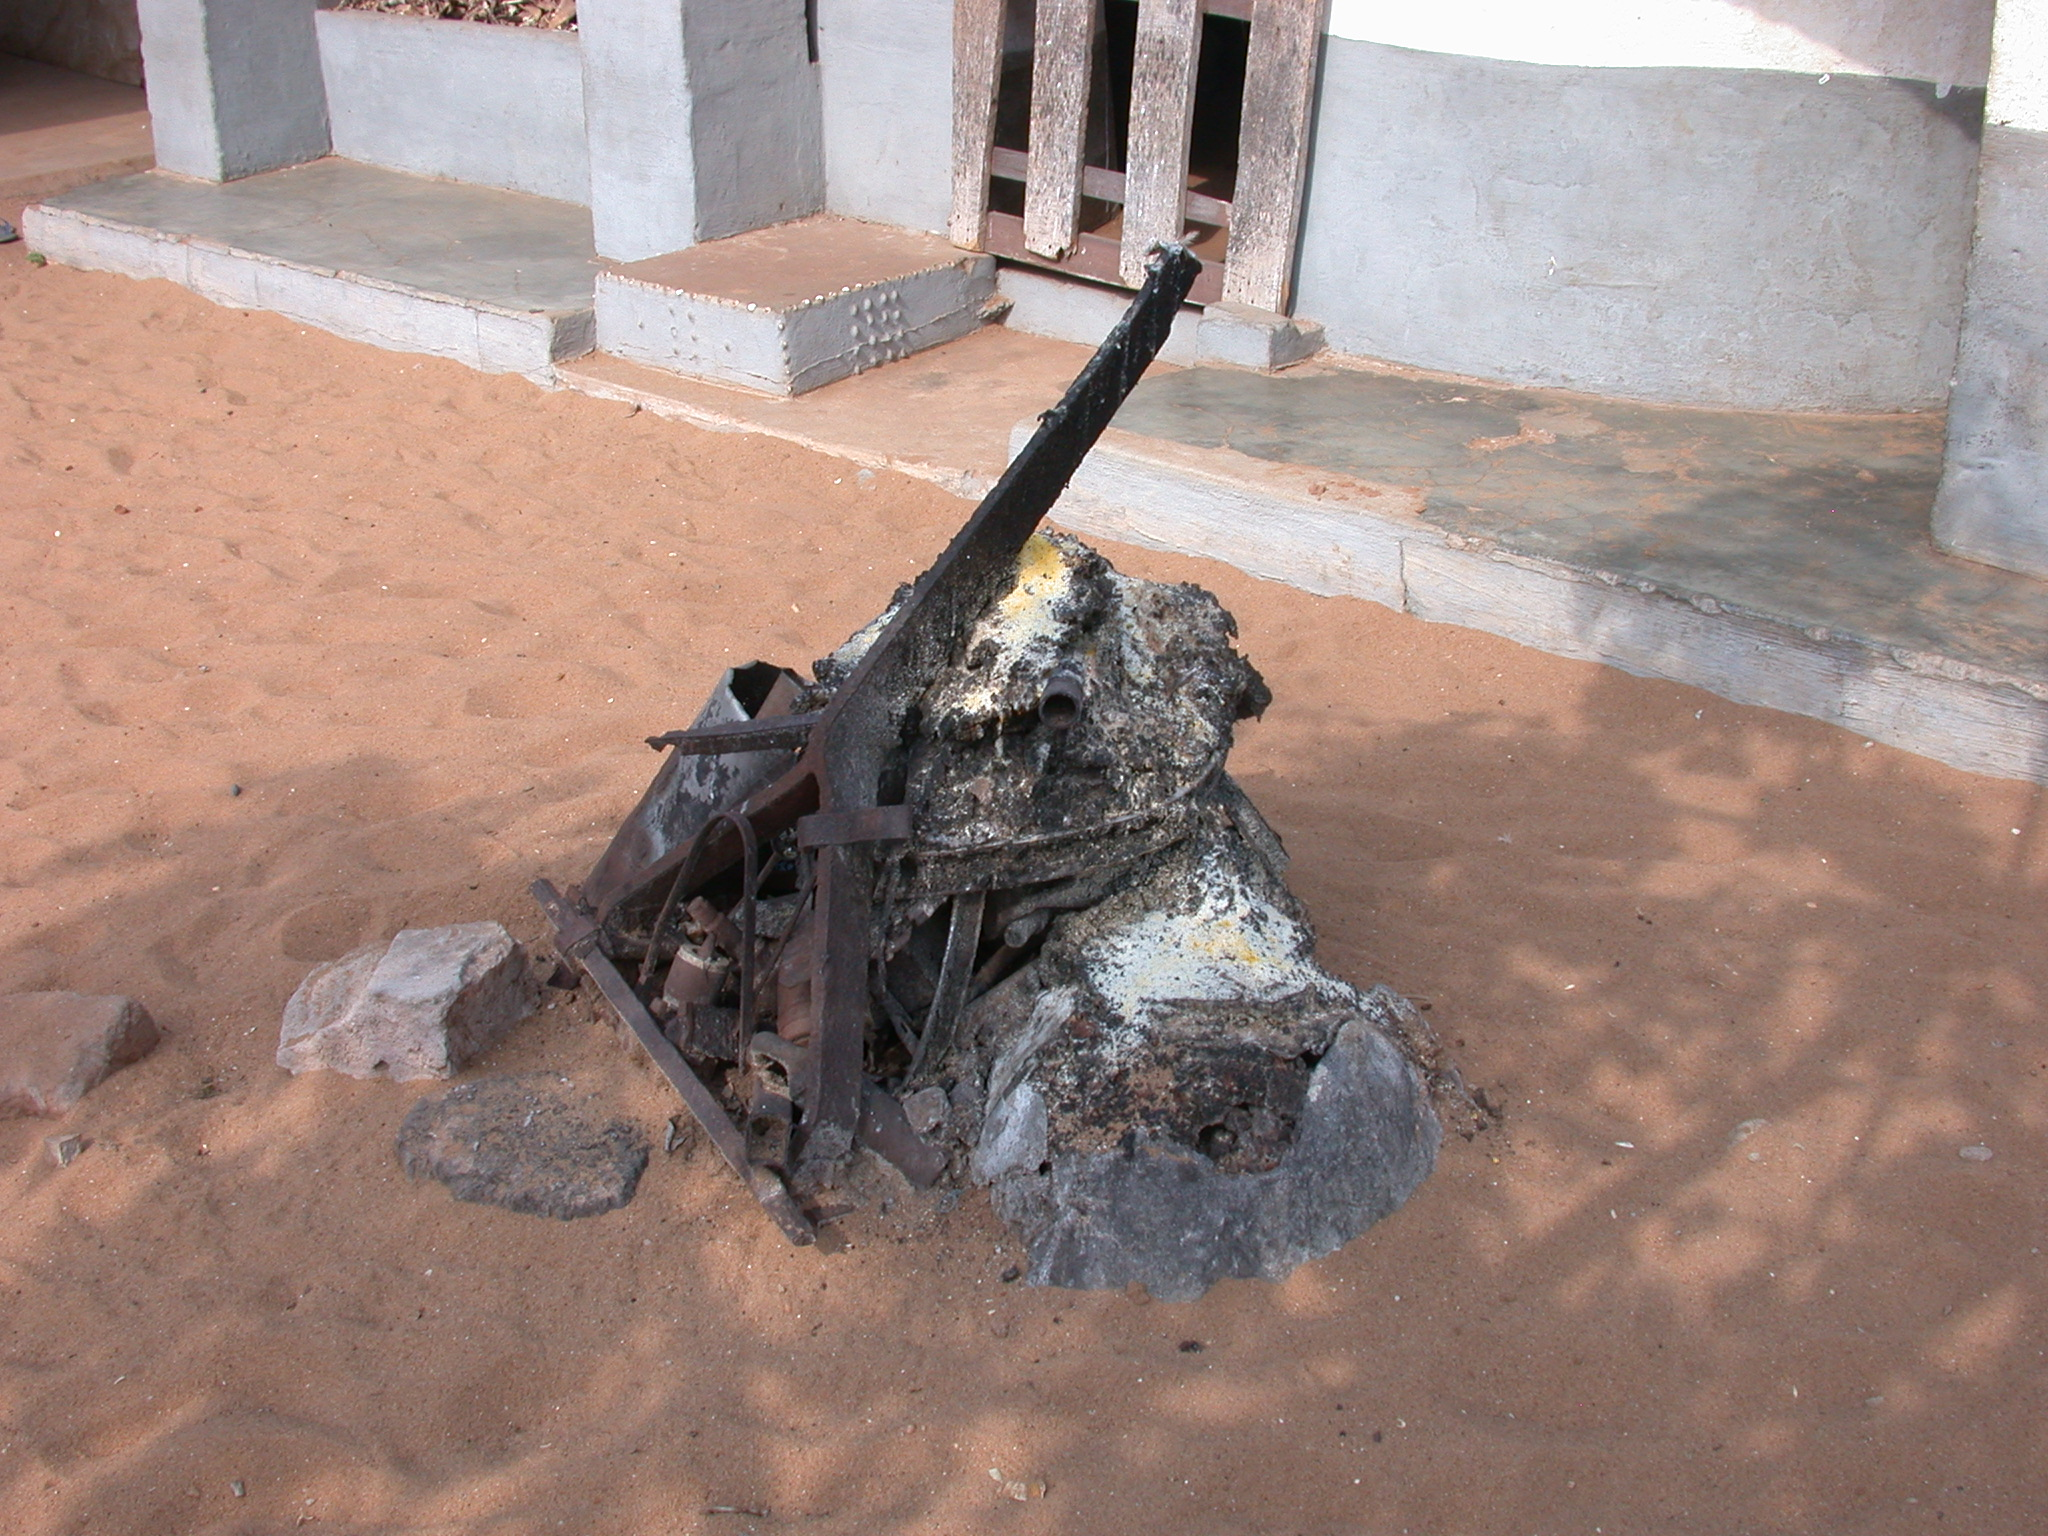 Iron Shrine, Daagbo Hounon Dodo Palace, Ouidah, Benin